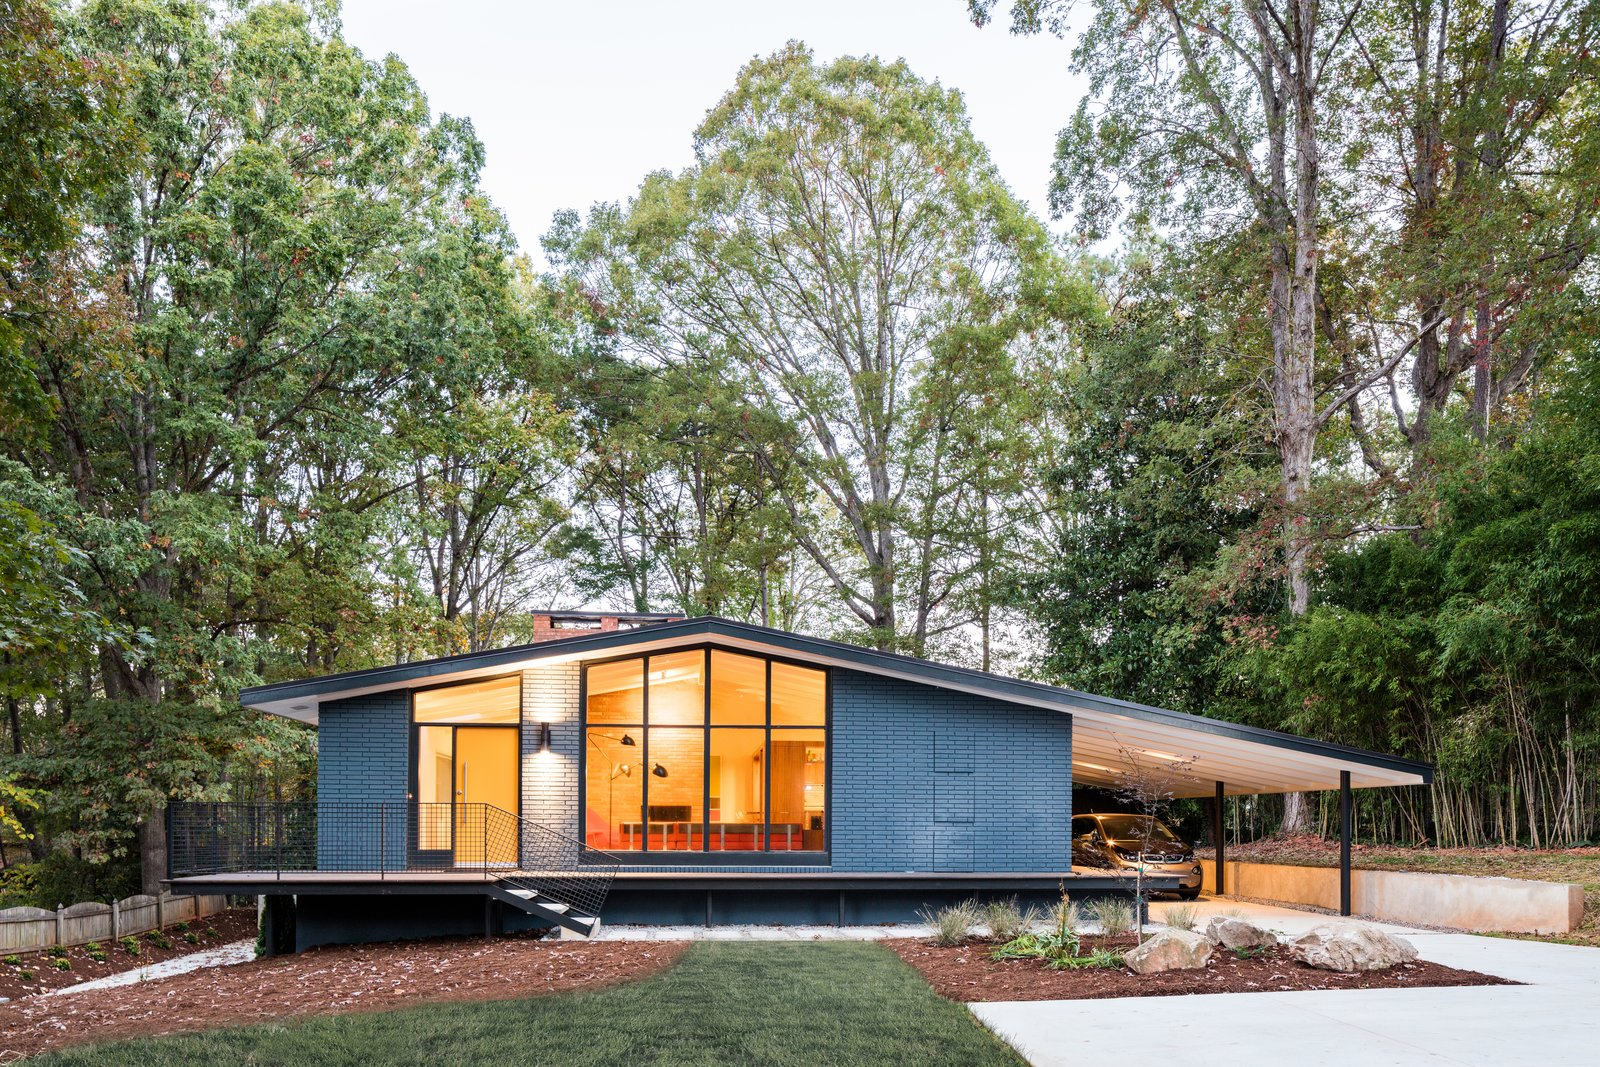 Photo 1 of 14 in Elegantly Renovated, a Midcentury Home in Raleigh Asks $975K